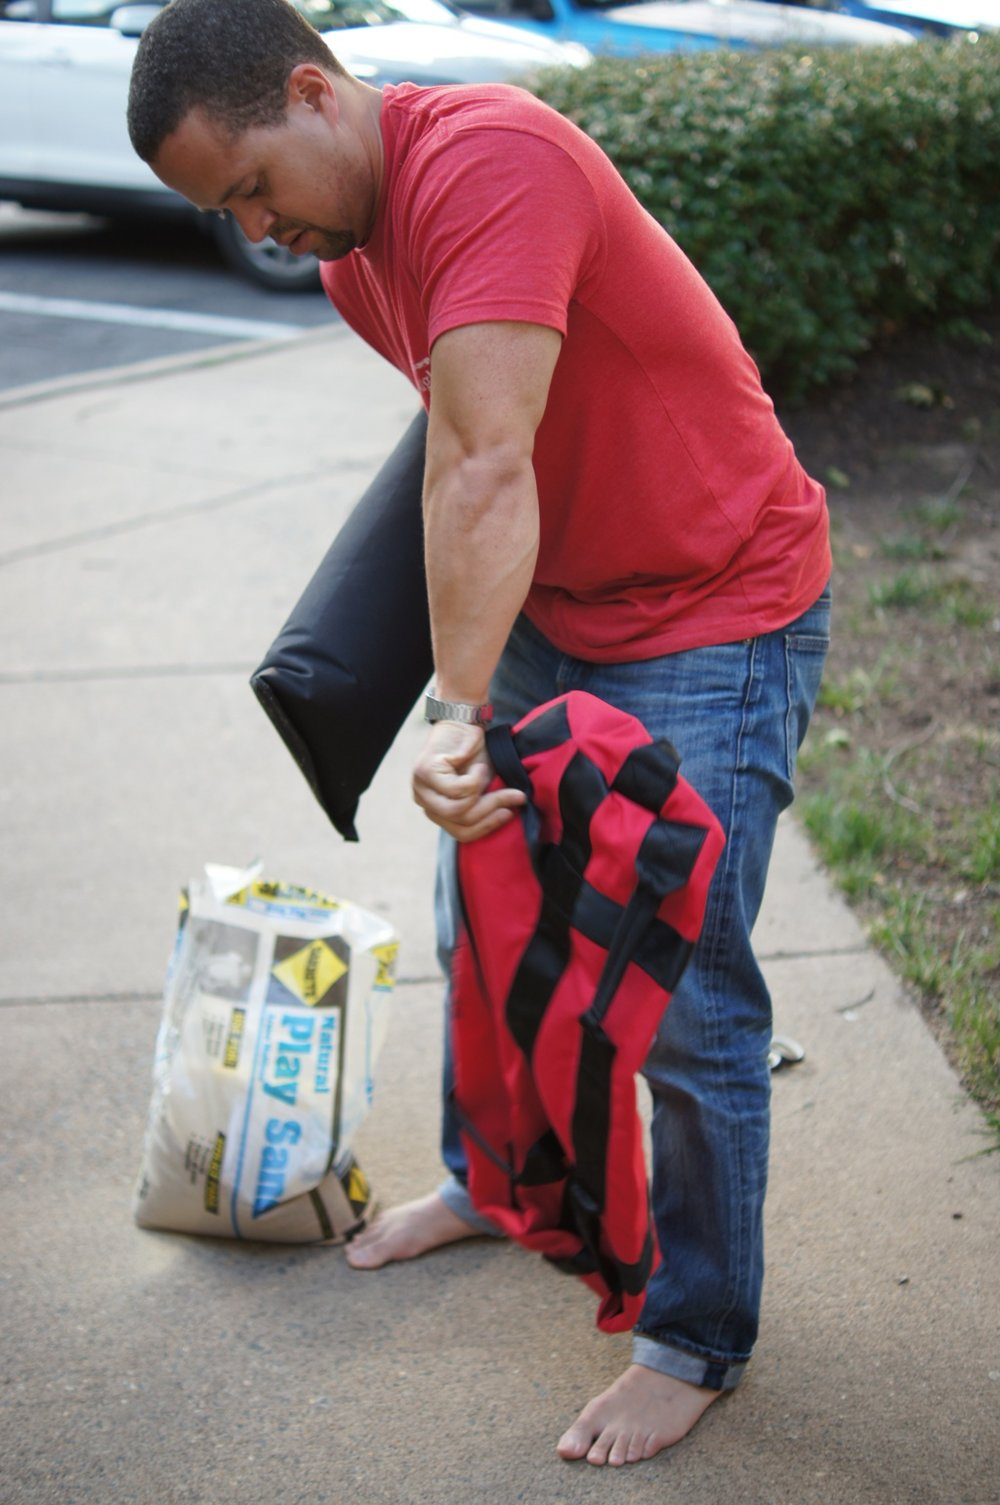 Rep Fitness How to Fill Your Sandbag Pinterest Image 3